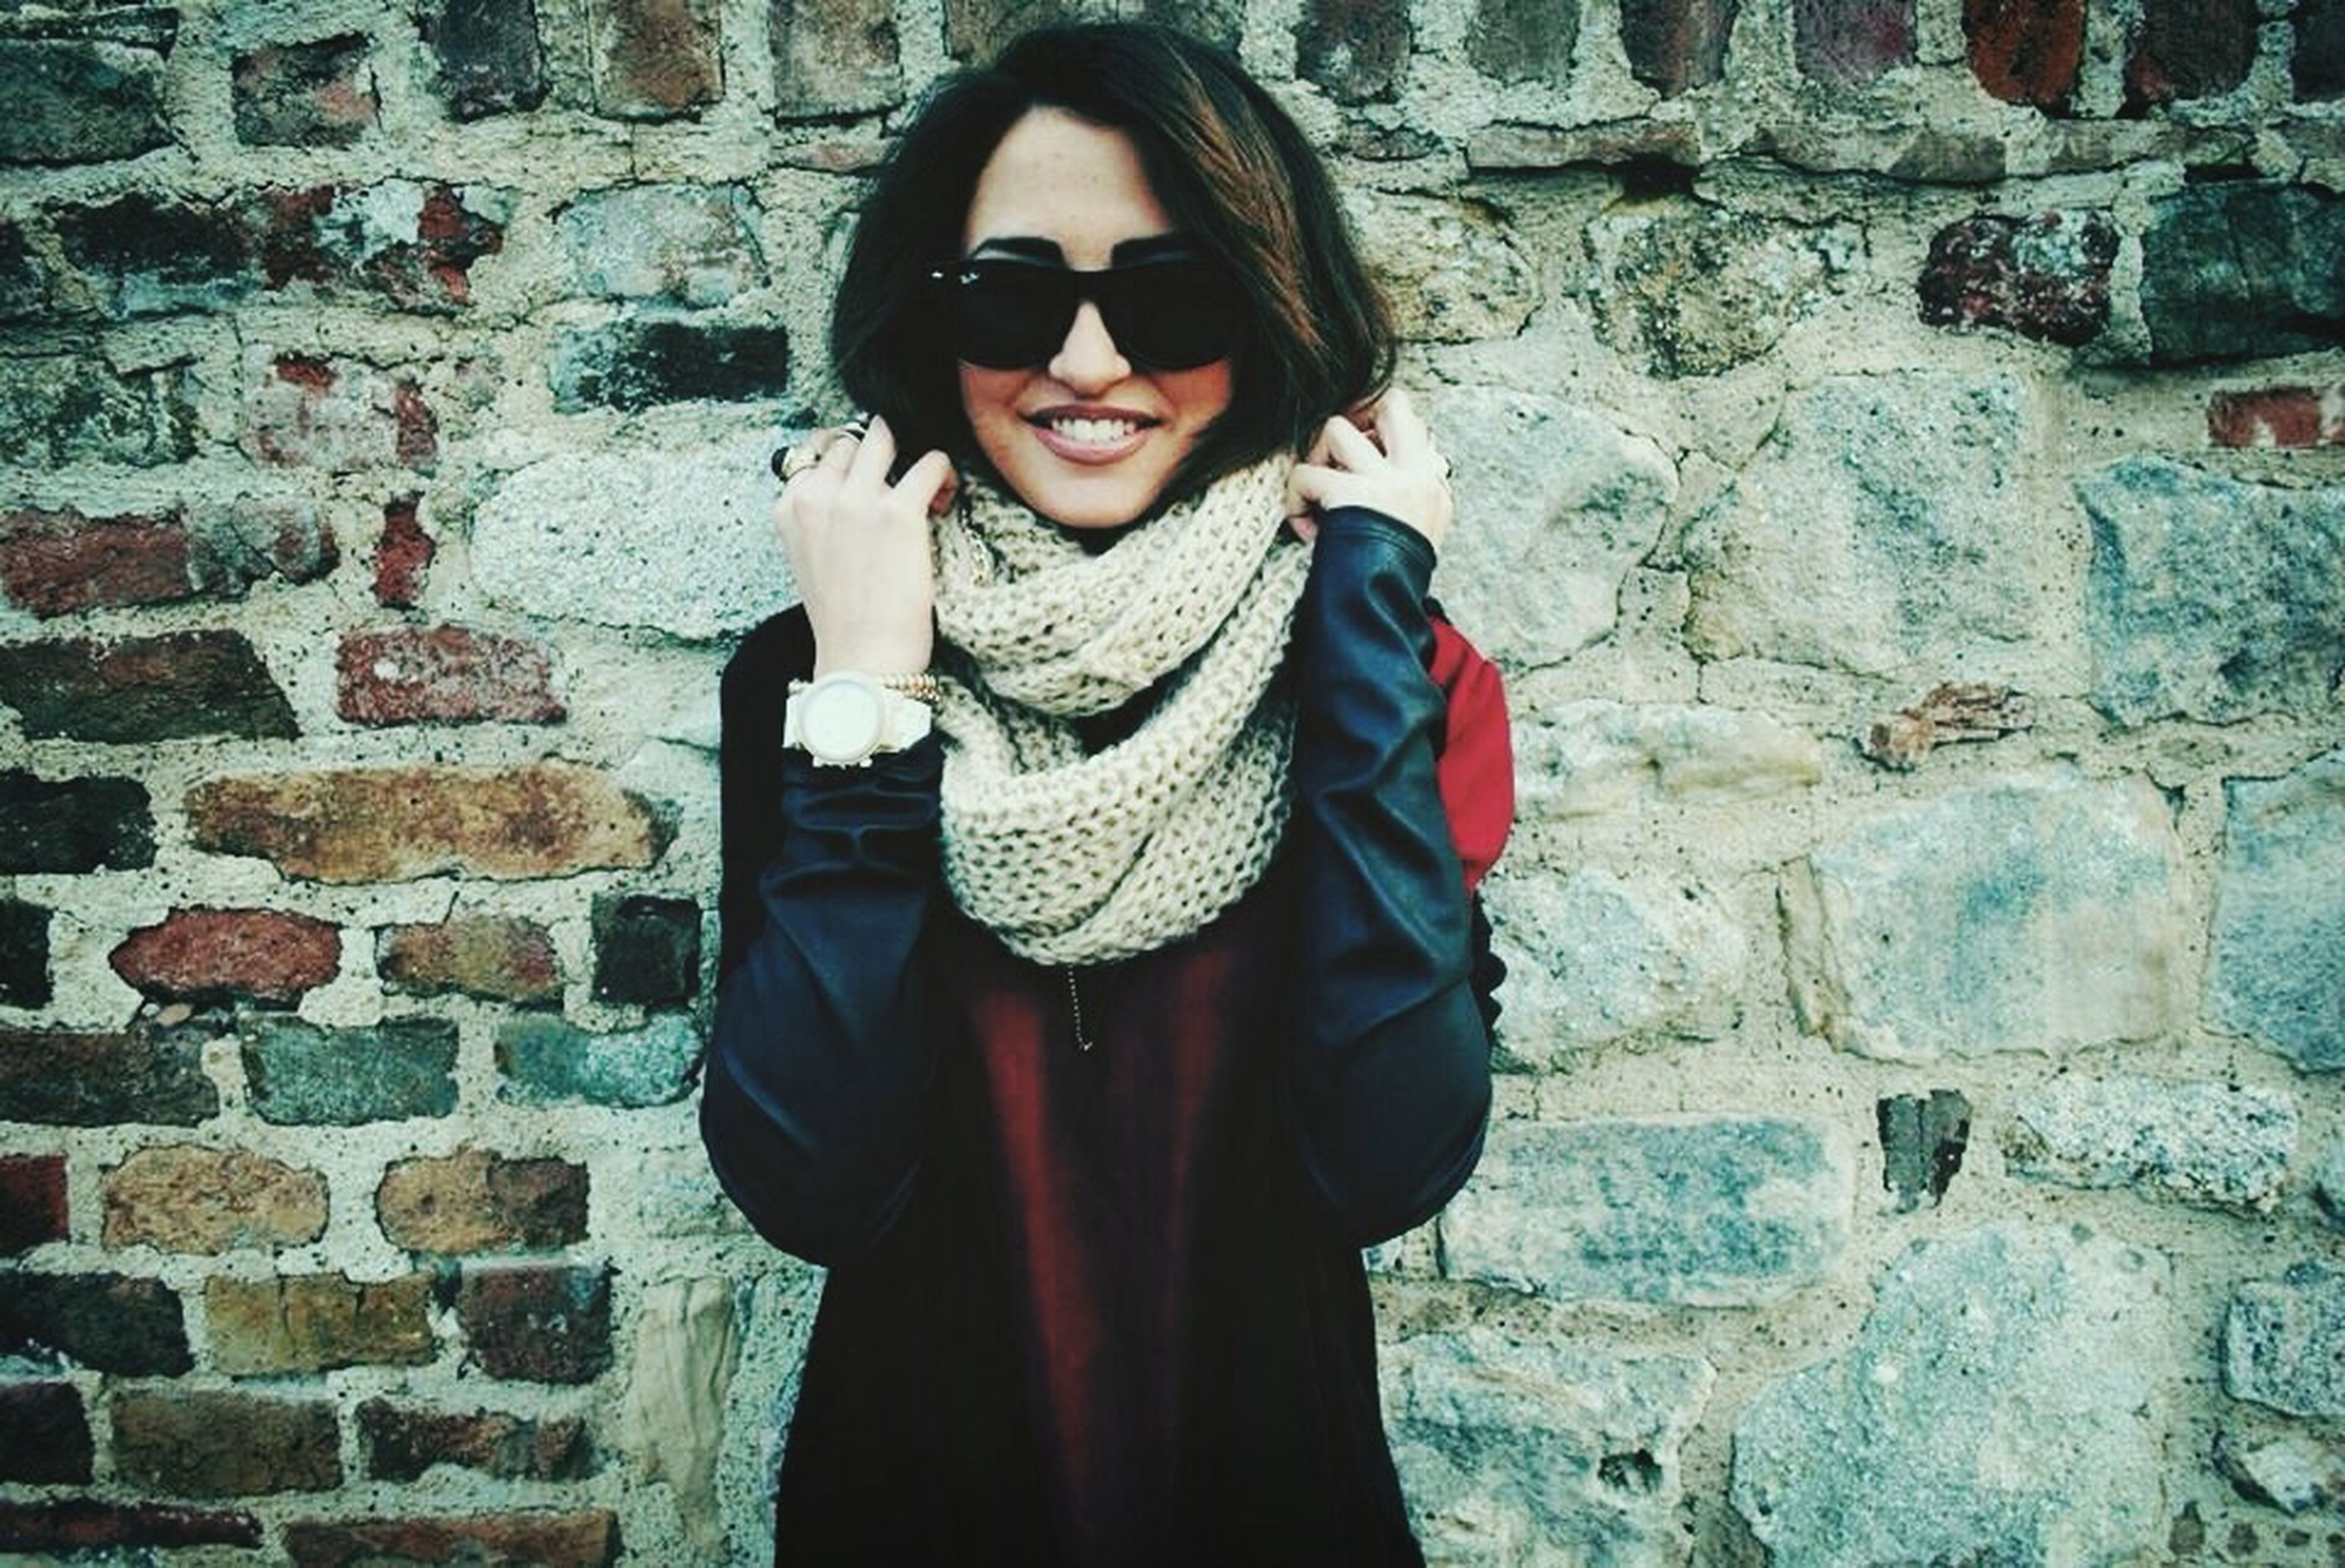 young adult, lifestyles, standing, young women, front view, portrait, casual clothing, person, looking at camera, leisure activity, wall - building feature, brick wall, three quarter length, sunglasses, smiling, built structure, fashion